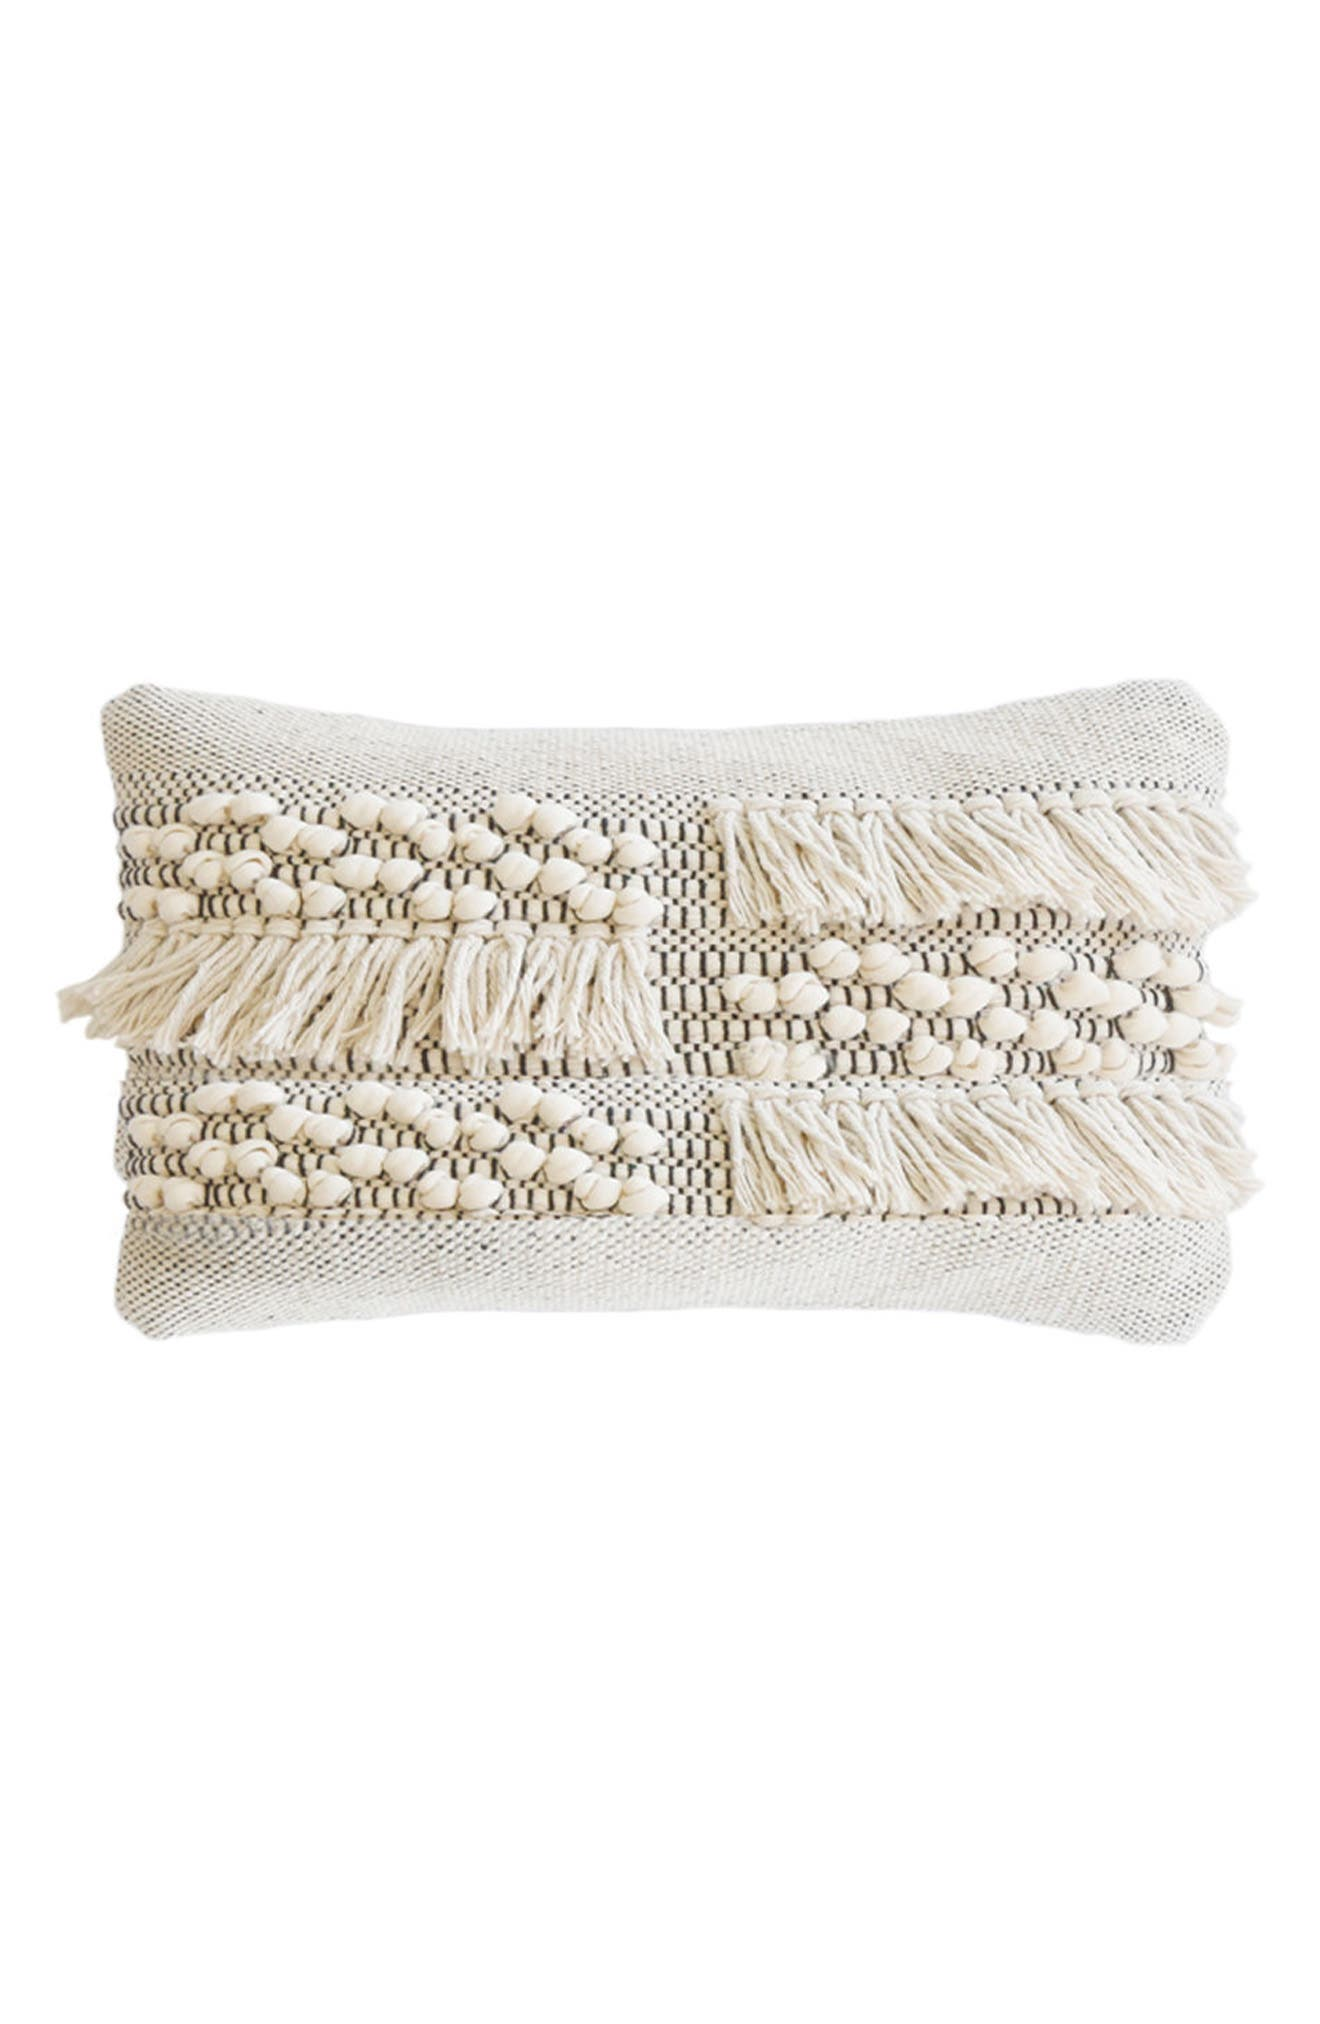 Zahra Accent Pillow,                         Main,                         color, Ivory